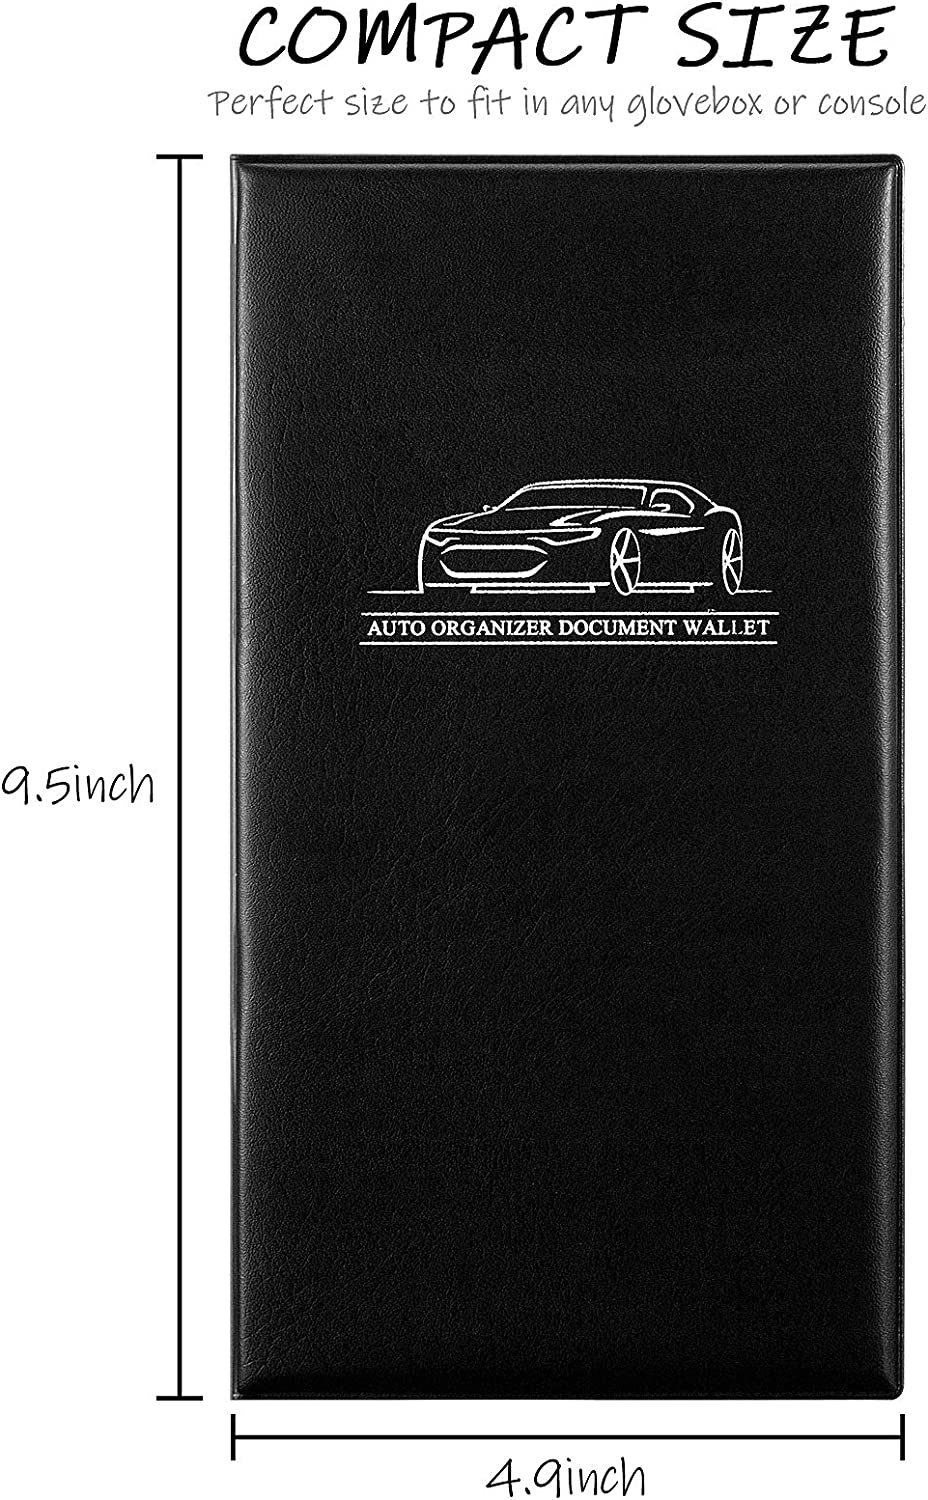 Trailer 4 Pieces Car Insurance and Registration Card Holder Automobile Essential Documents Wallet for Auto Truck